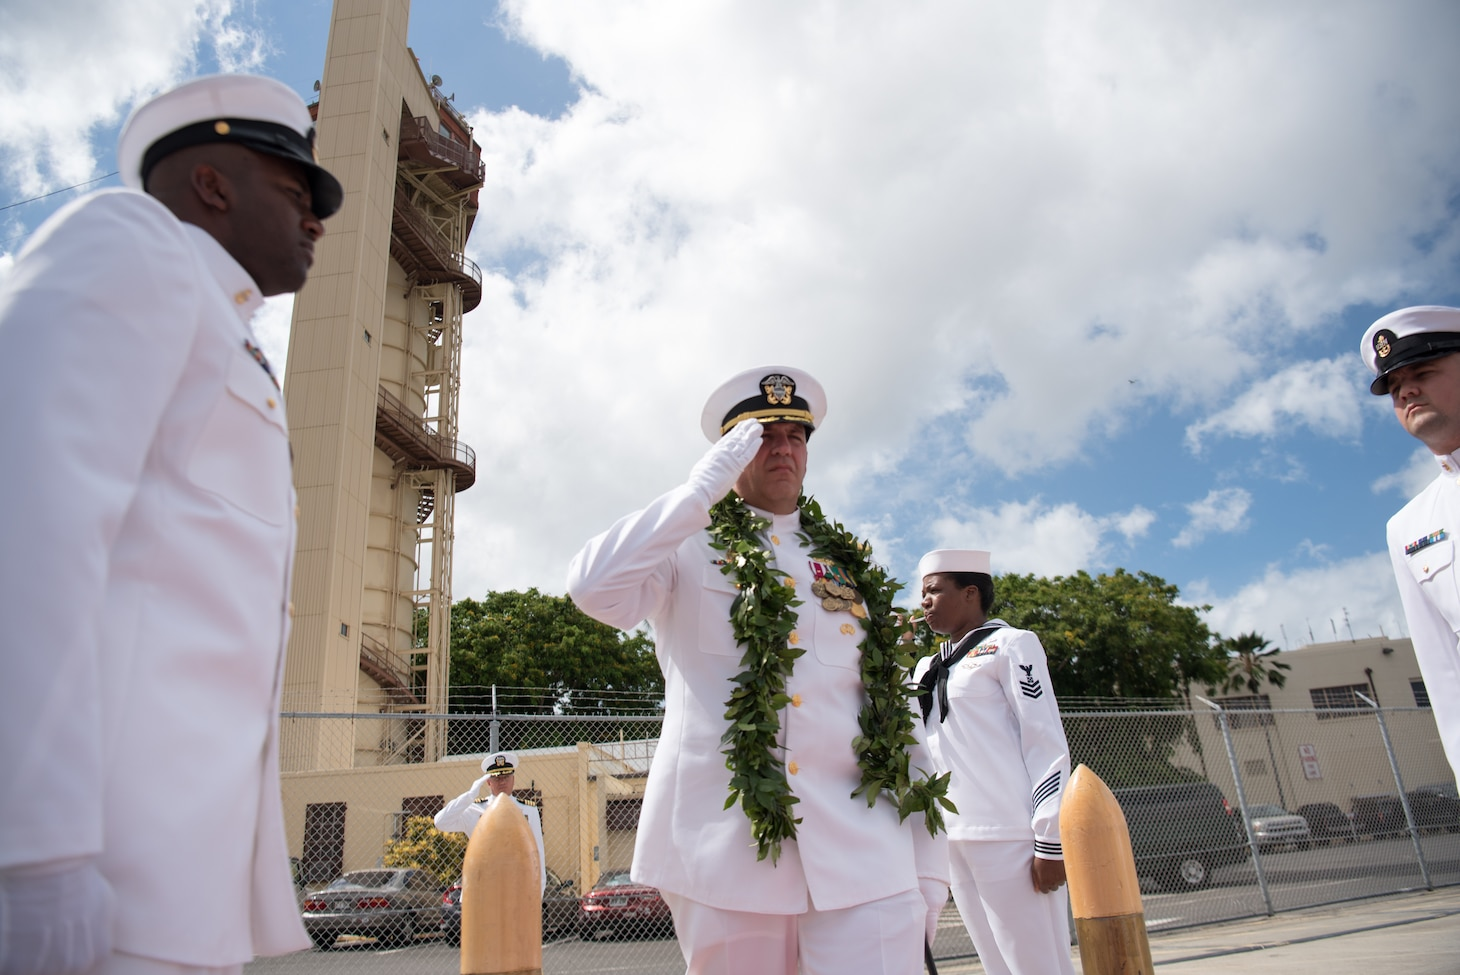 Cmdr. John C. Roussakies, commanding officer of the Virginia-class fast-attack submarine USS Hawaii (SSN 776), walks through the side boys during a change of command ceremony on the submarine piers in Joint Base Pearl Harbor-Hickam, August 2. Cmdr. Sterling S. Jordan relieved Roussakies as Hawaii's commanding officer.